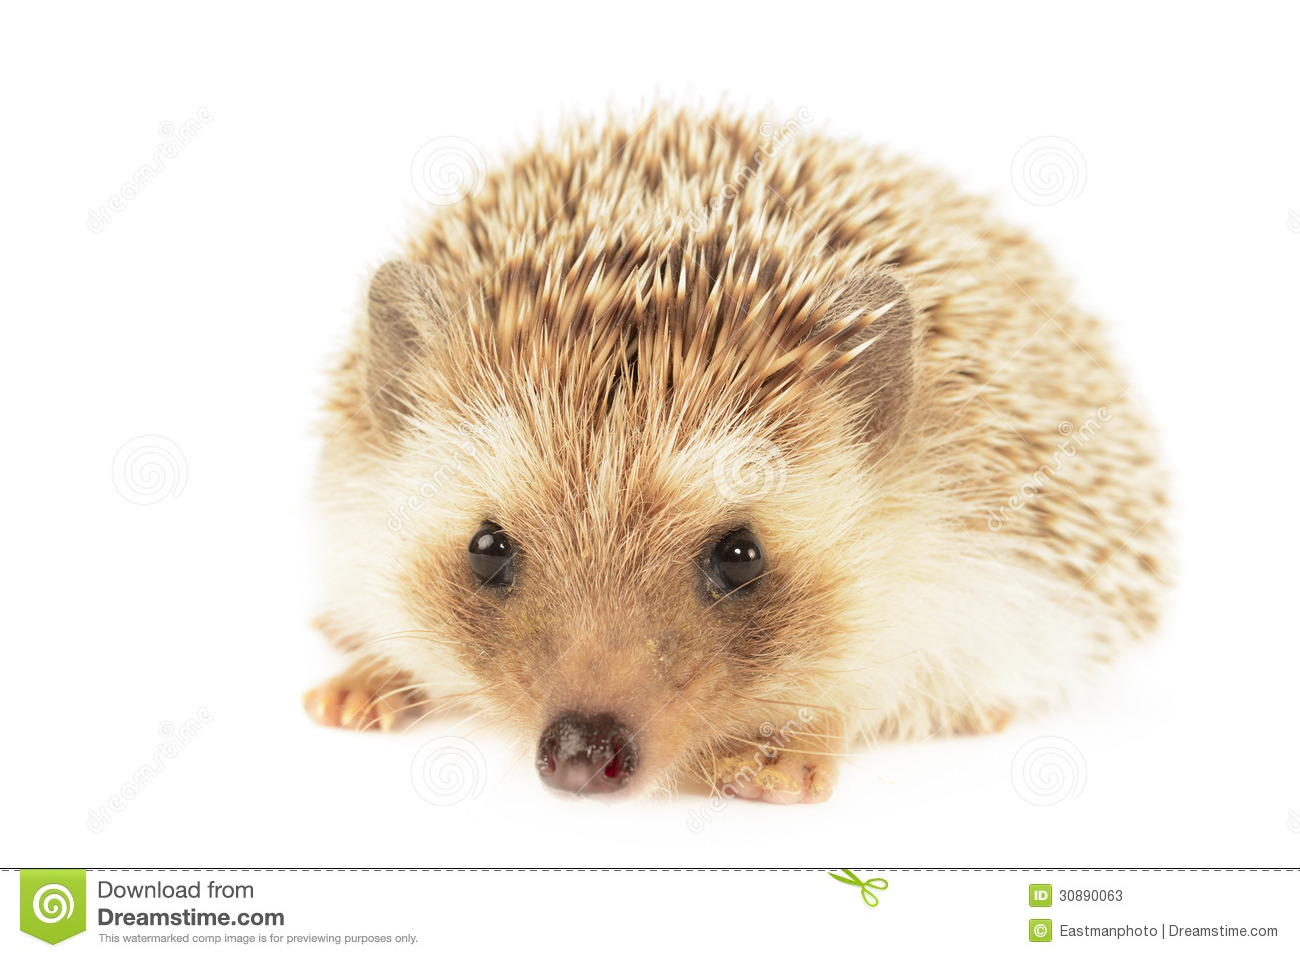 Hedgehog Stock Photos - Image: 30890063 White Parson Russell Terrier